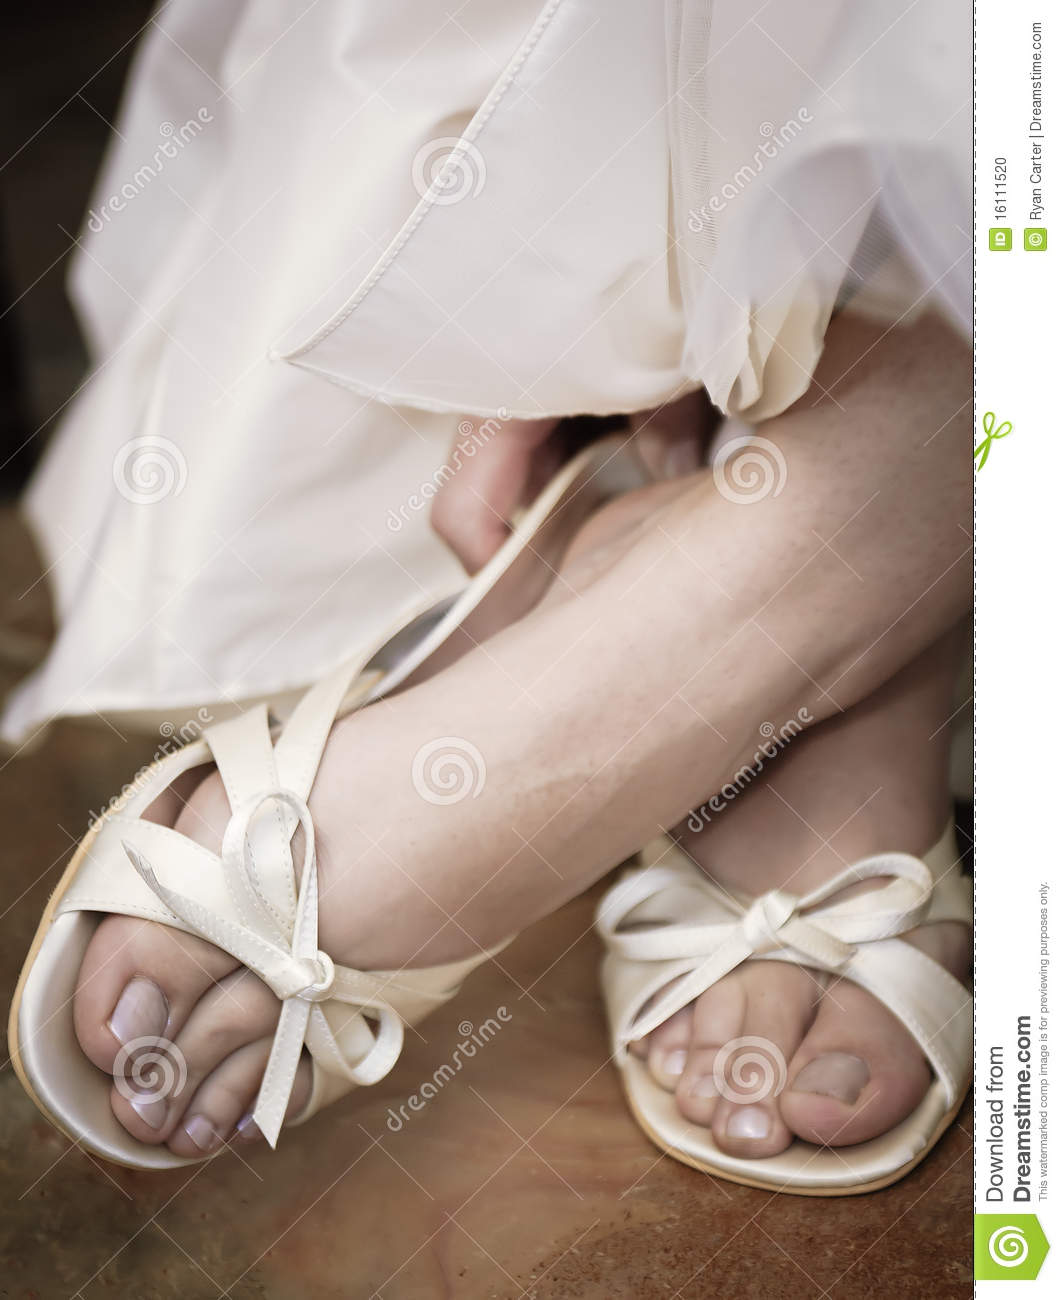 More similar stock images of ` Brides Shoes